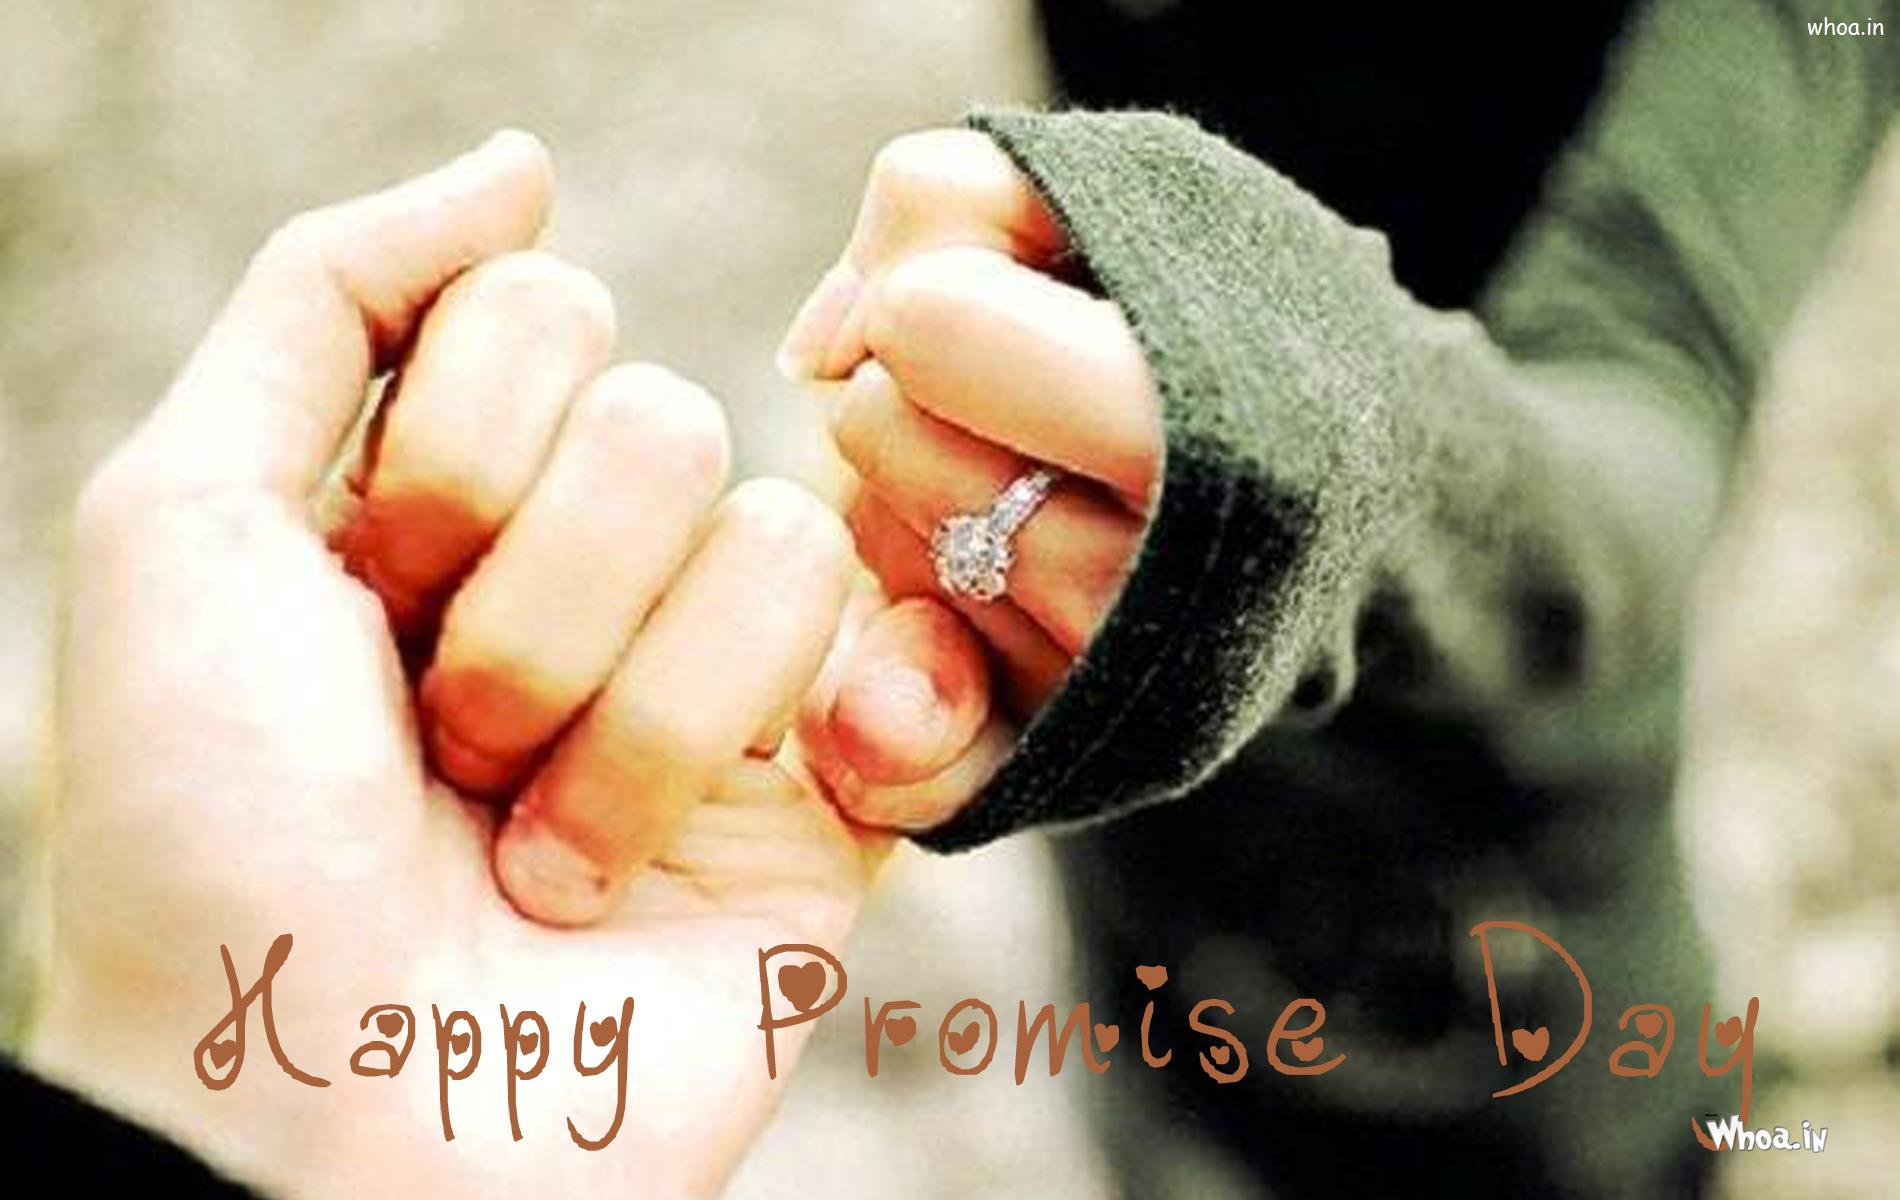 Wonderful Wallpaper Friendship Finger - happy-promise-day-couple-hd-wallpaper  Collection_68890 .in/download/happy-promise-day-couple-hd-wallpaper